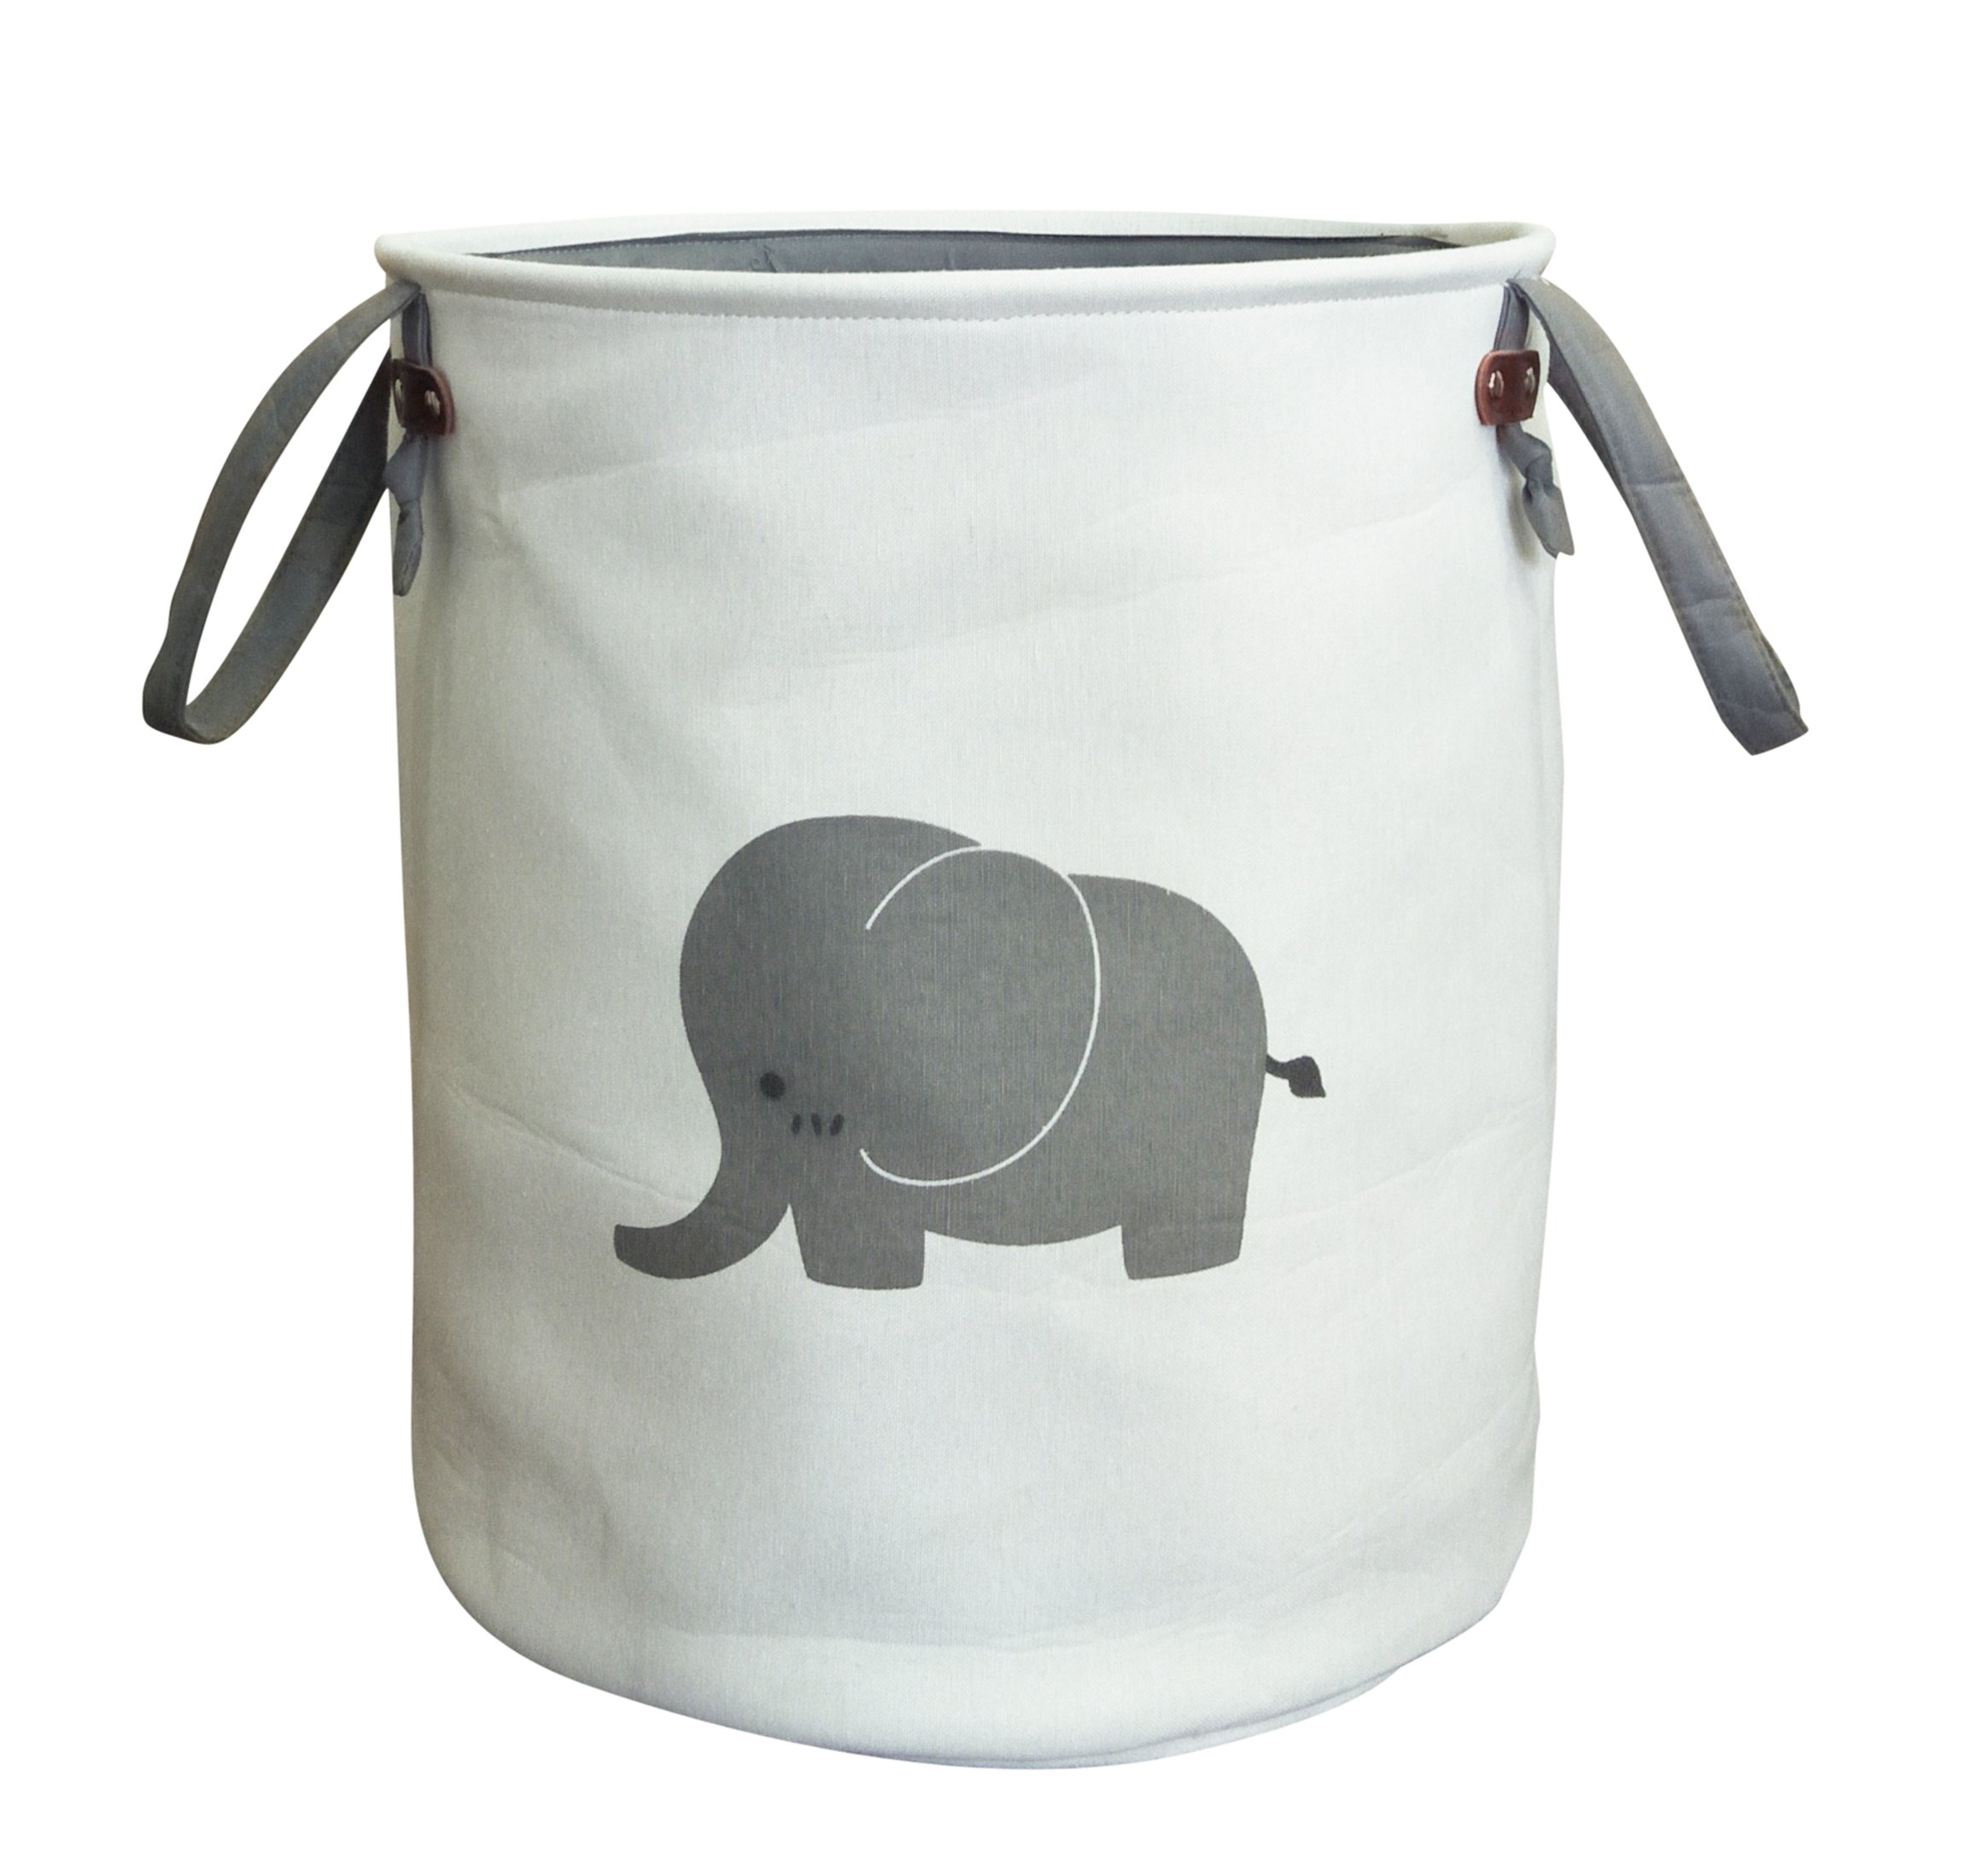 ESSME Canvas Toy Organizer,Cotton Cute Elephant Bin,Collapsible Storage Basket with Handles for Baby Clothes,Laundry,Toy,Bedroom and Office(Elephant)